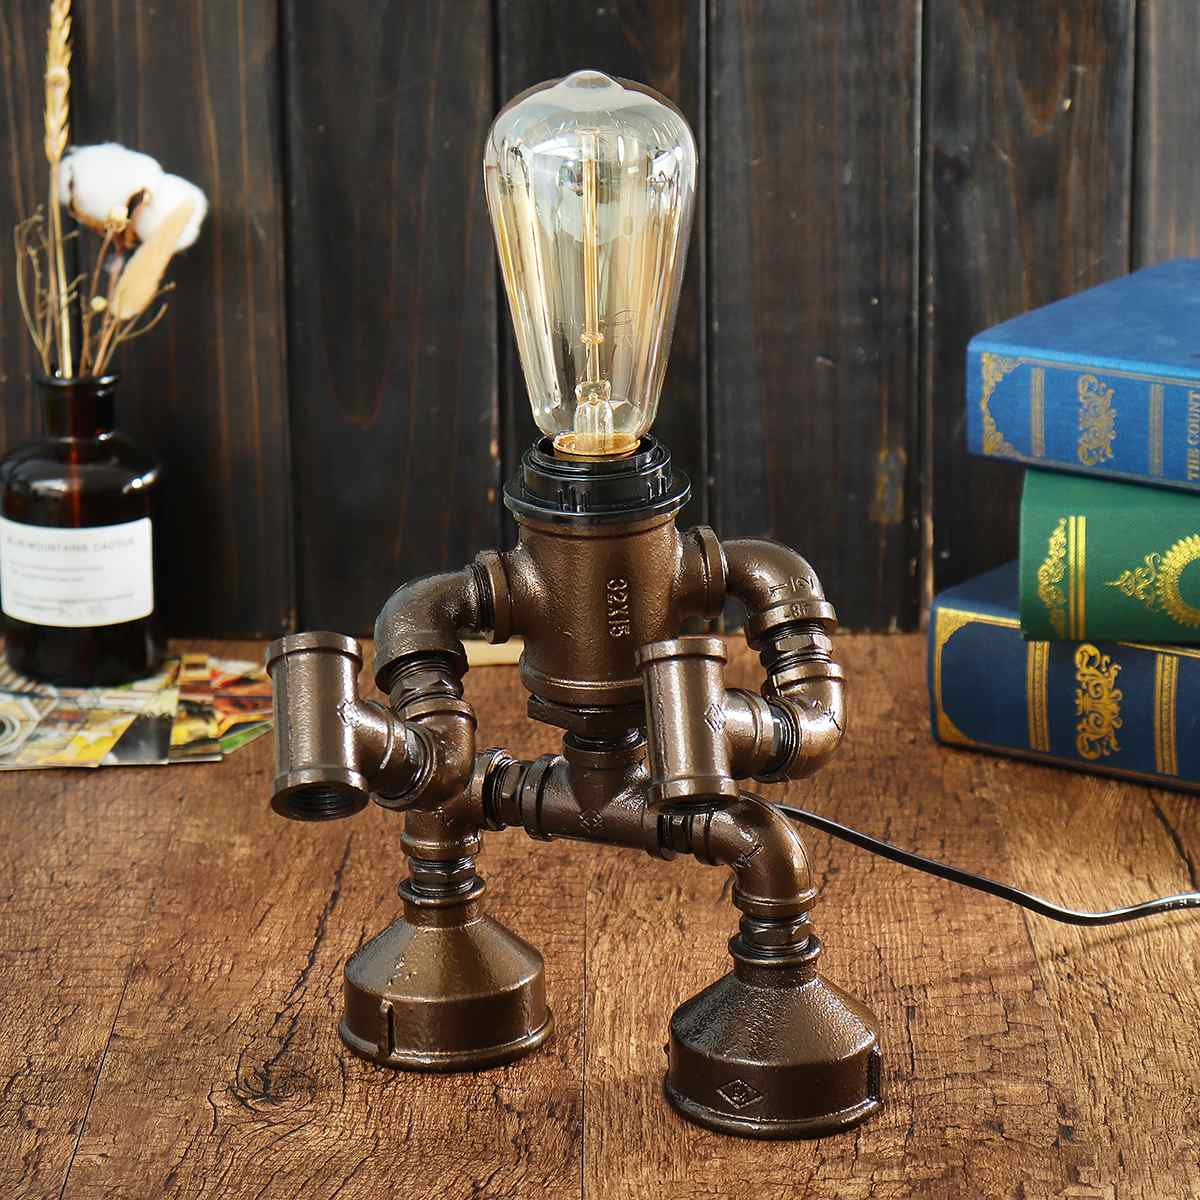 Industrial Robot Light Water Pipe Steampunk Table Lamp Vintage Bedroom Desk Lantern Fixture Indoor Lighting E27 Home DecorationIndustrial Robot Light Water Pipe Steampunk Table Lamp Vintage Bedroom Desk Lantern Fixture Indoor Lighting E27 Home Decoration